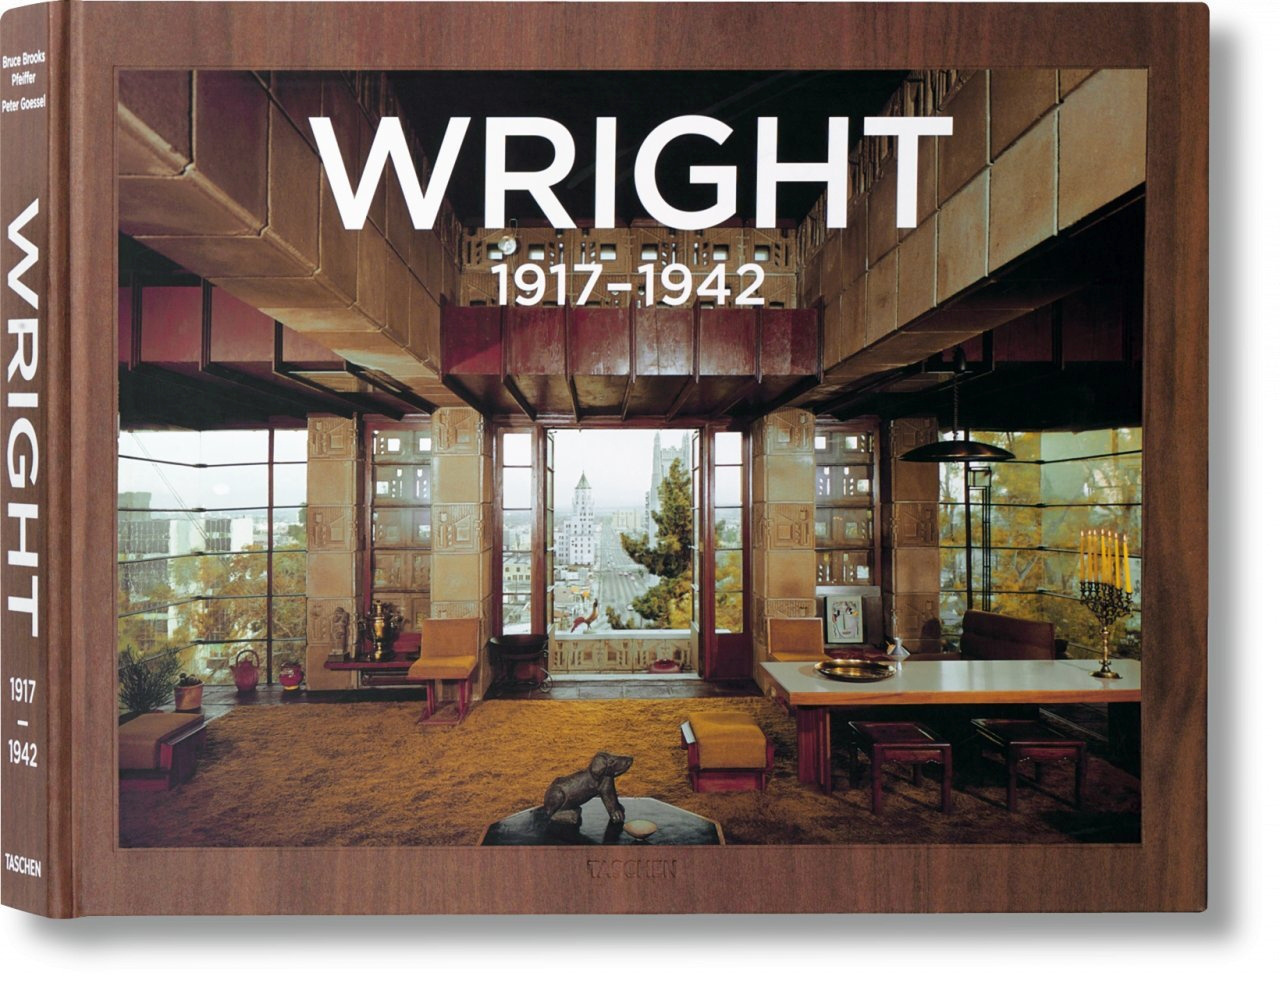 FRANK LLOYD WRIGHT. COMPLETE WORKS. VOL. 2, 1917-1942 - WRIGHT, VOL.2 1917-1942-TRILINGUE